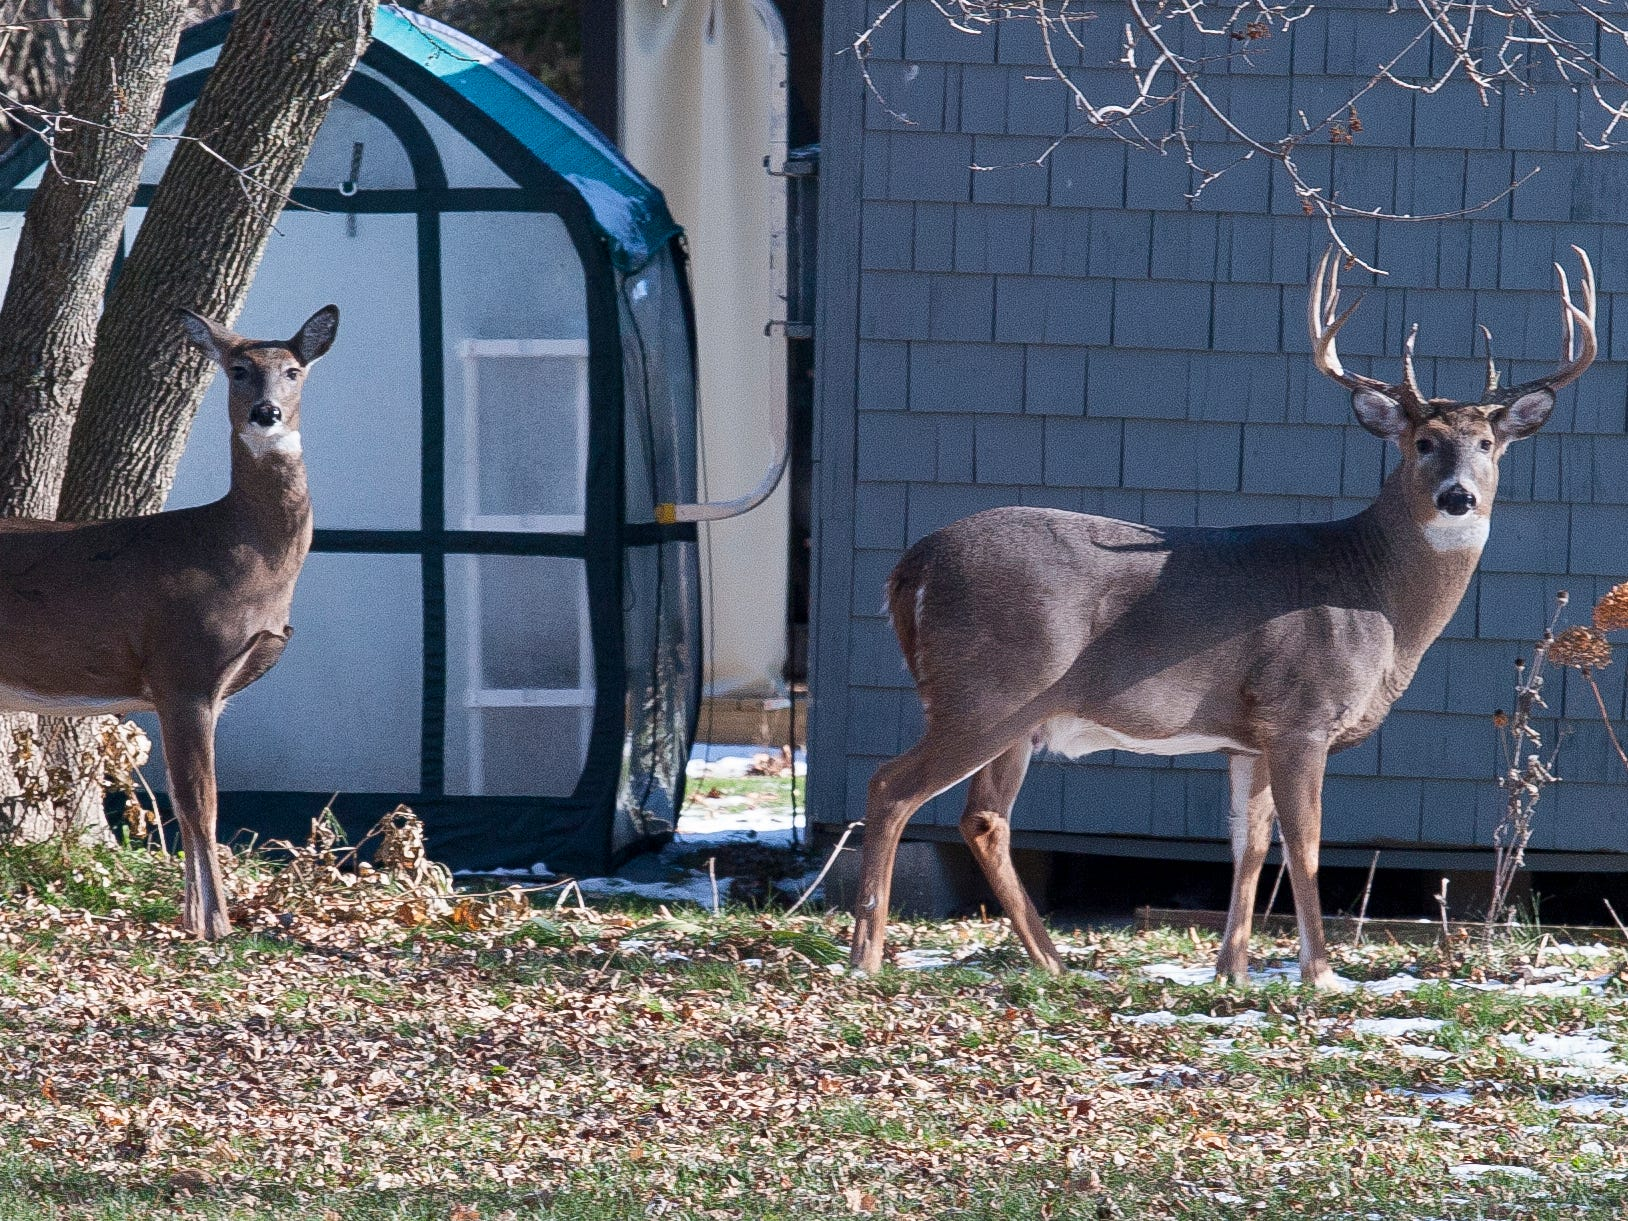 A pair of deer peer back at the photographer in the 1000 block of North 23rd Street, Wednesday November 14, 2018, in Sheboygan, Wis.